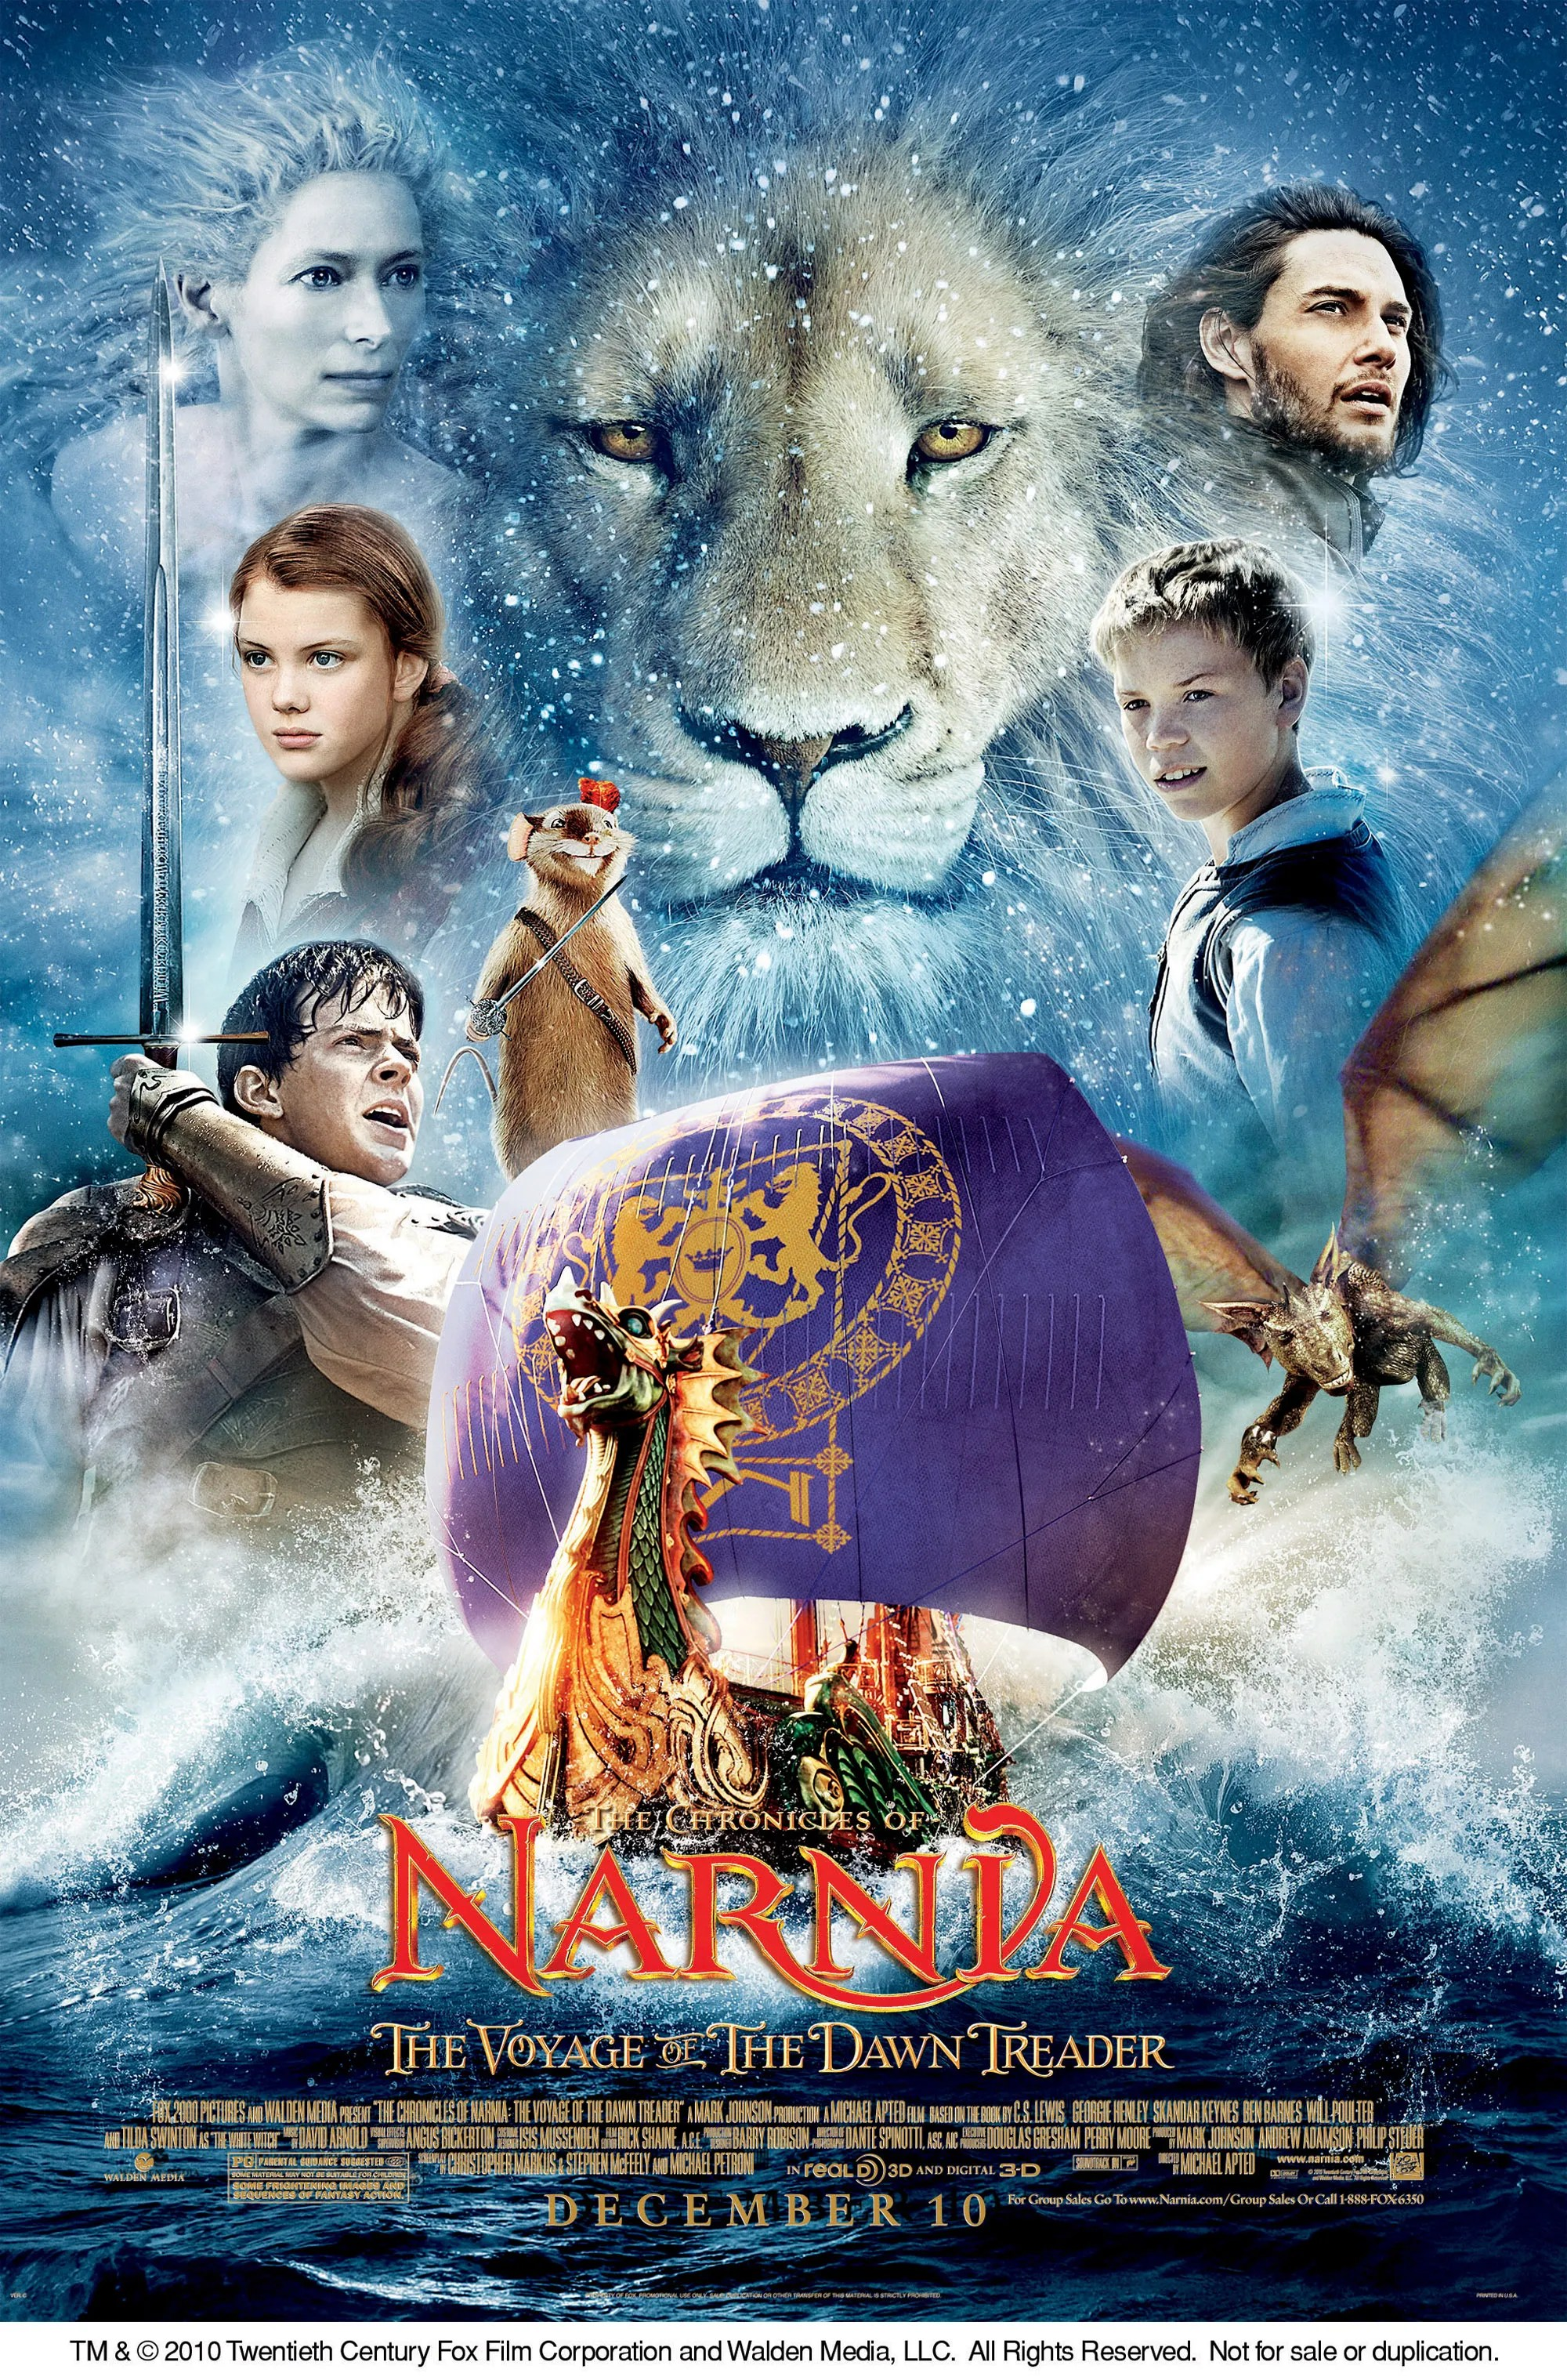 the chronicles of narnia silver chair mesh task reboot moving forward collider voyage dawn treader